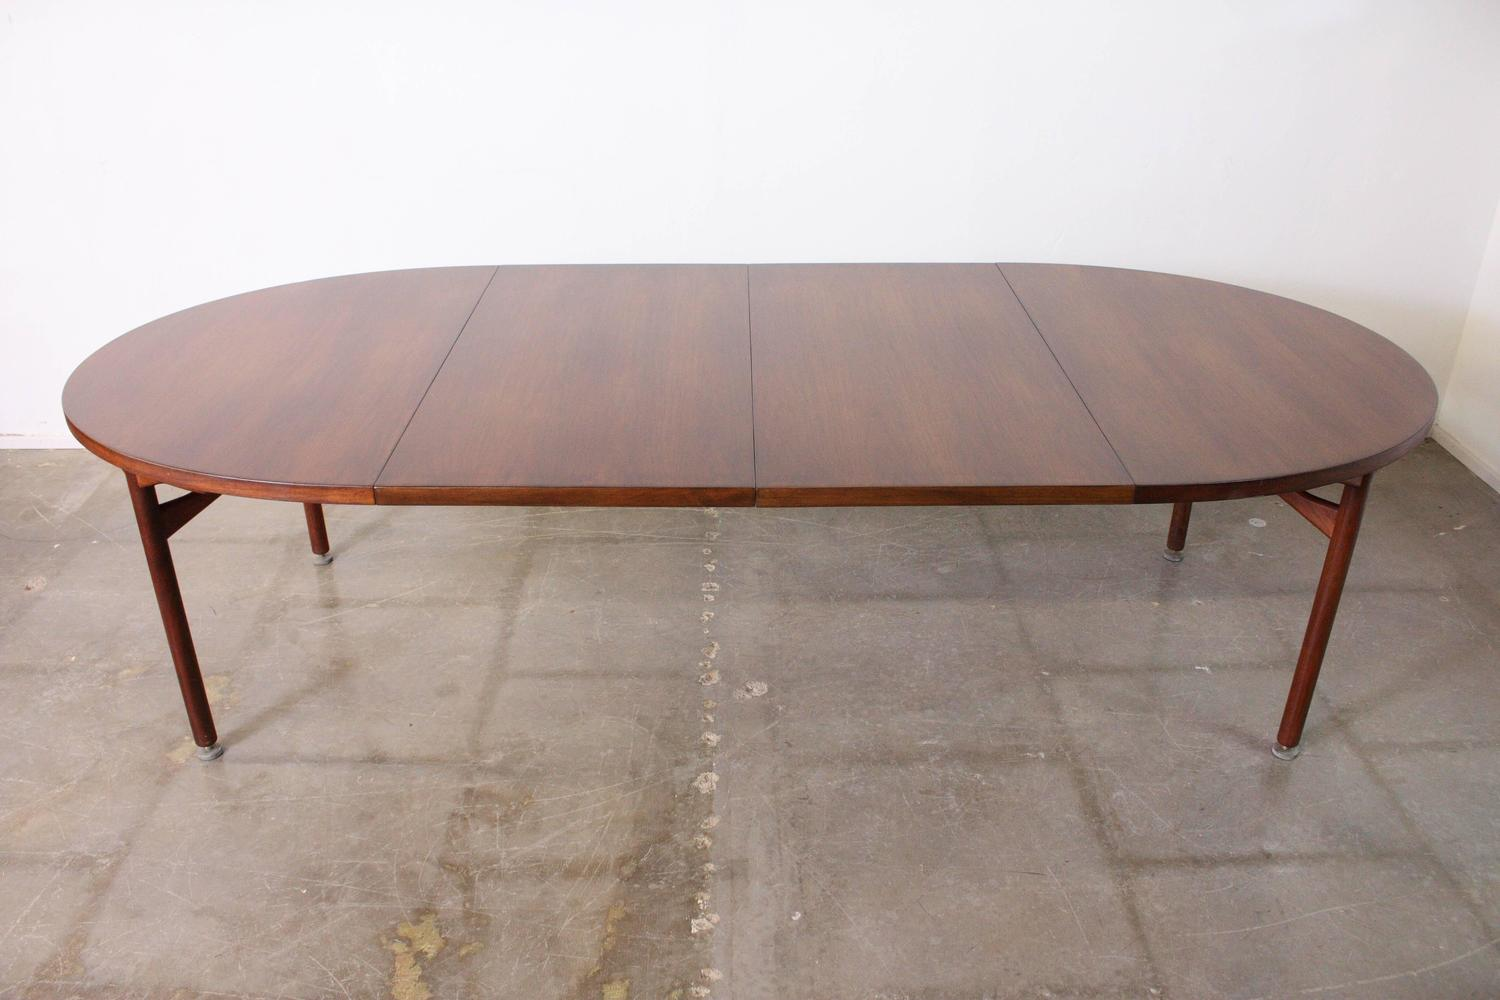 Jens Risom Walnut Expandable Dining Table For Sale at 1stdibs : IMG1445z from www.1stdibs.com size 1500 x 1000 jpeg 102kB